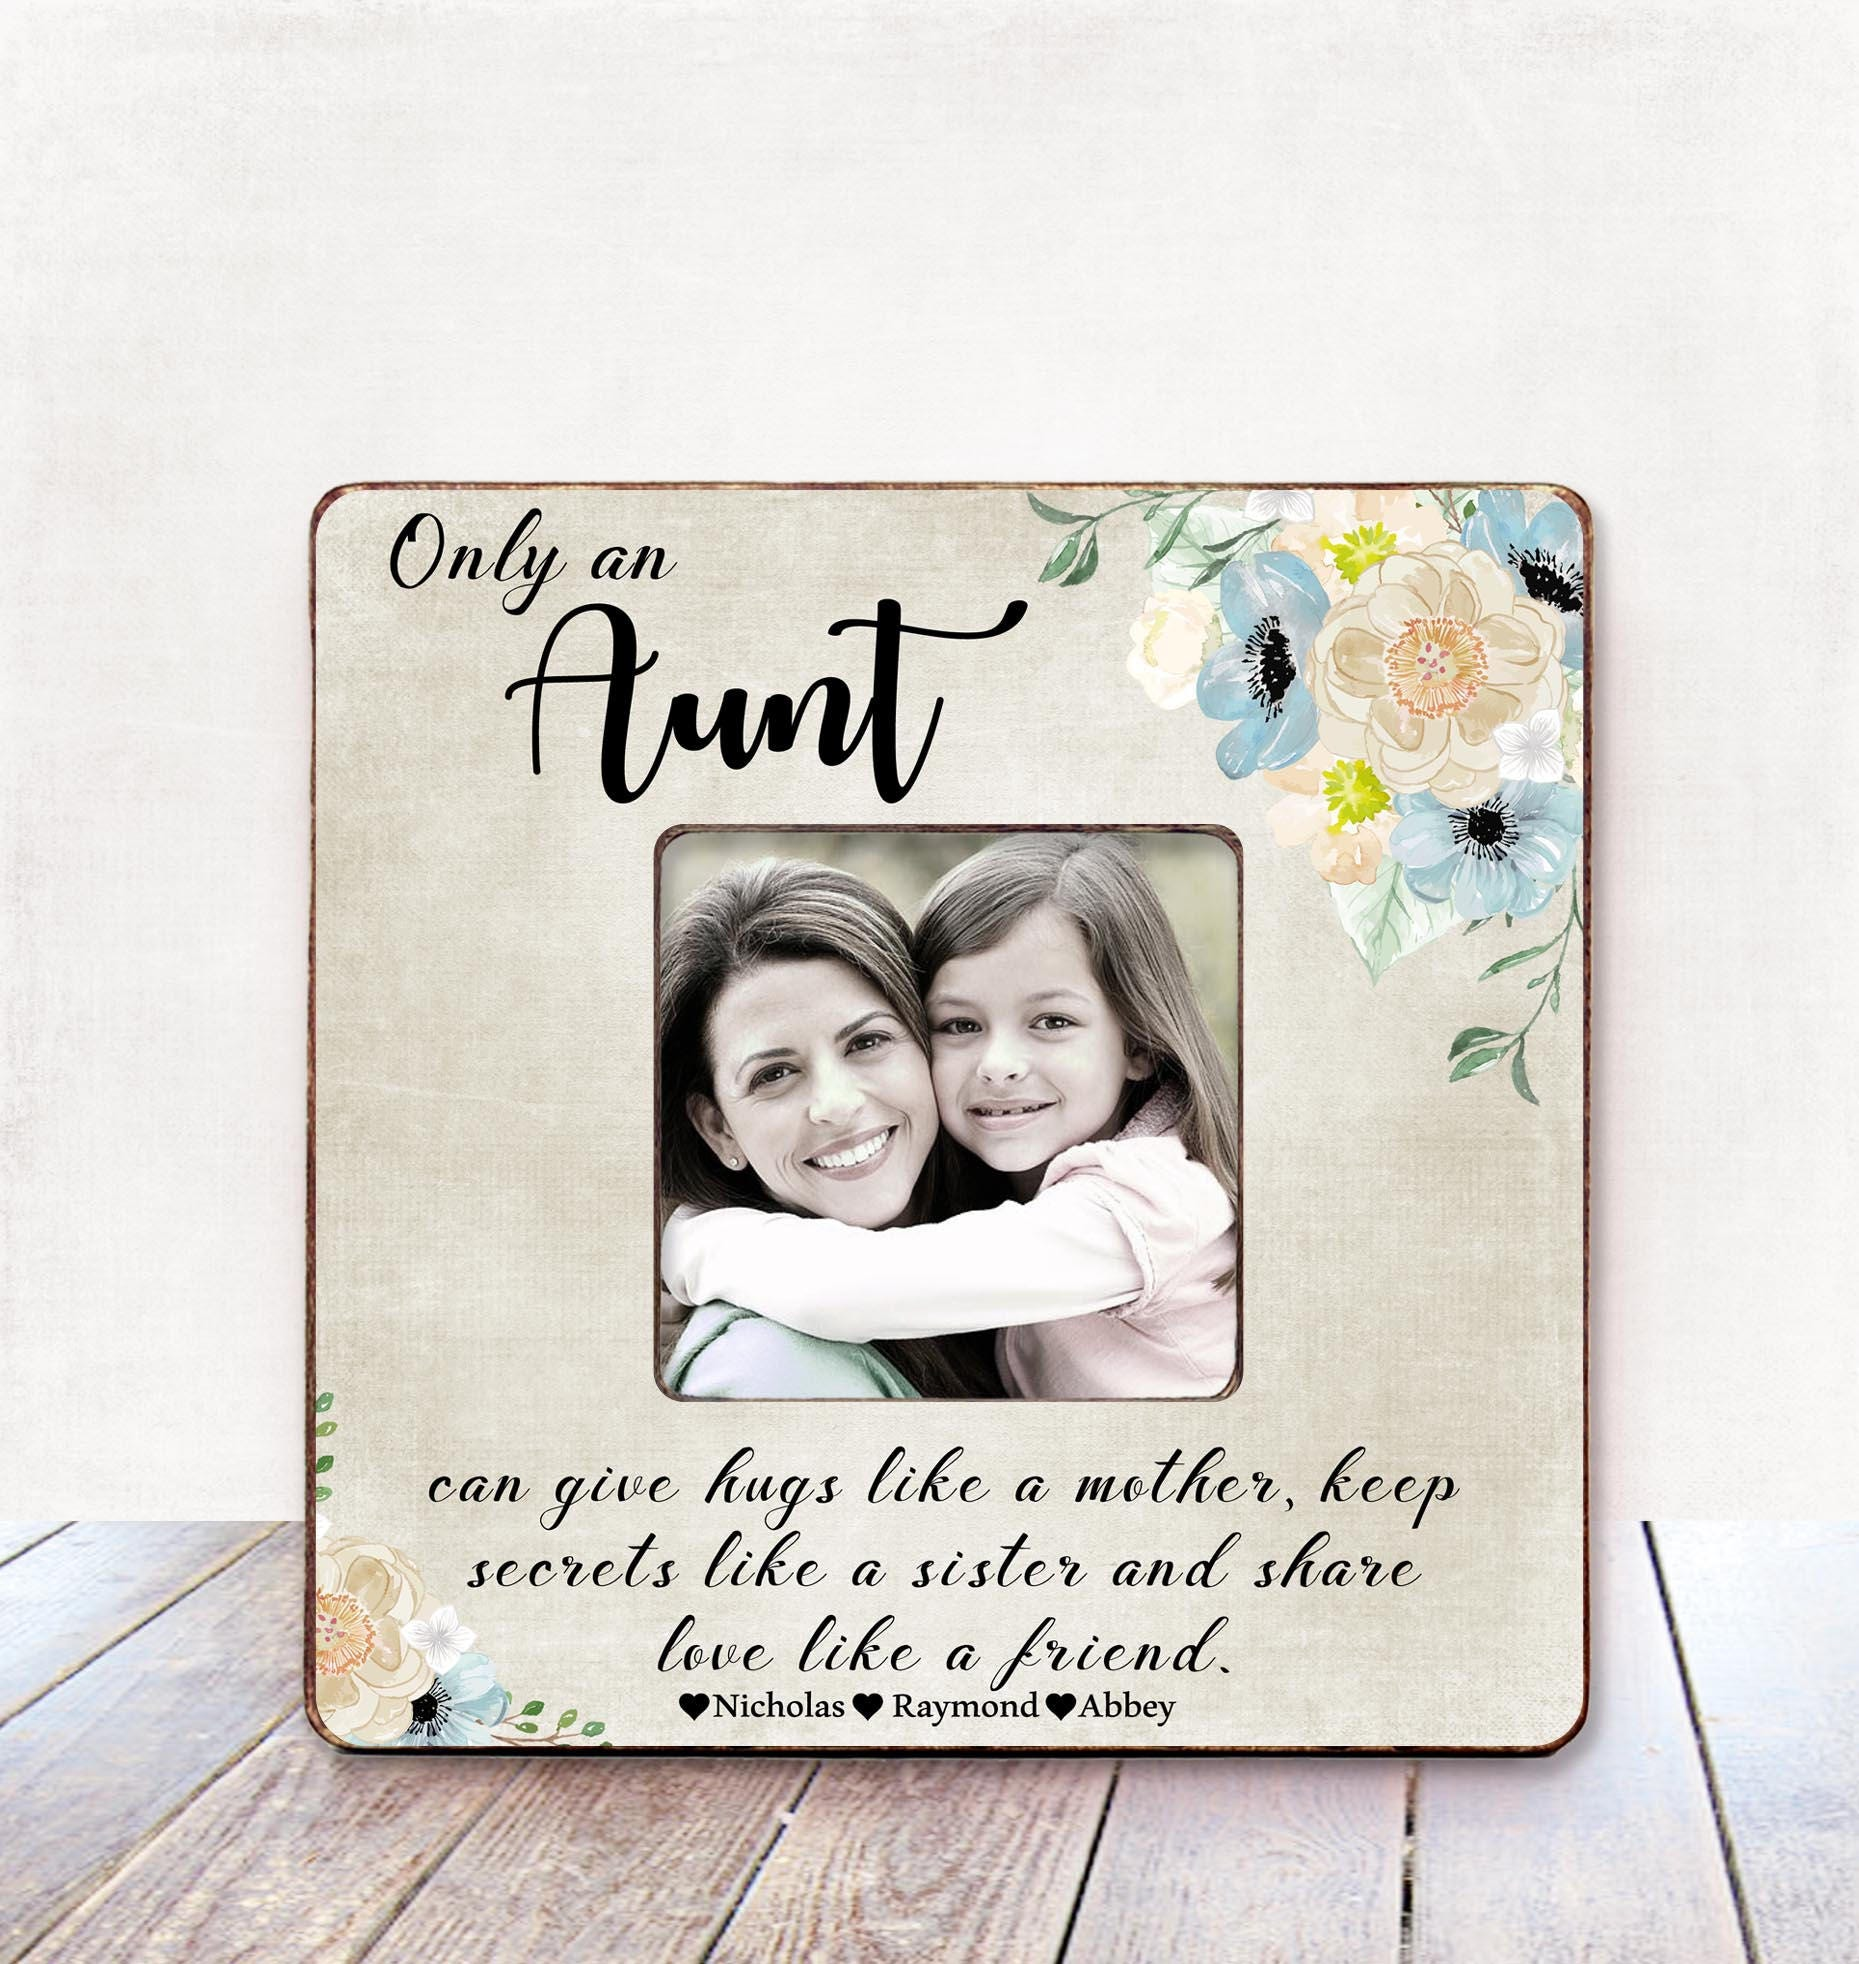 Aunt Christmas Gift Auntie BIRTHDAY Personalized Picture Frame From Niece Nephew